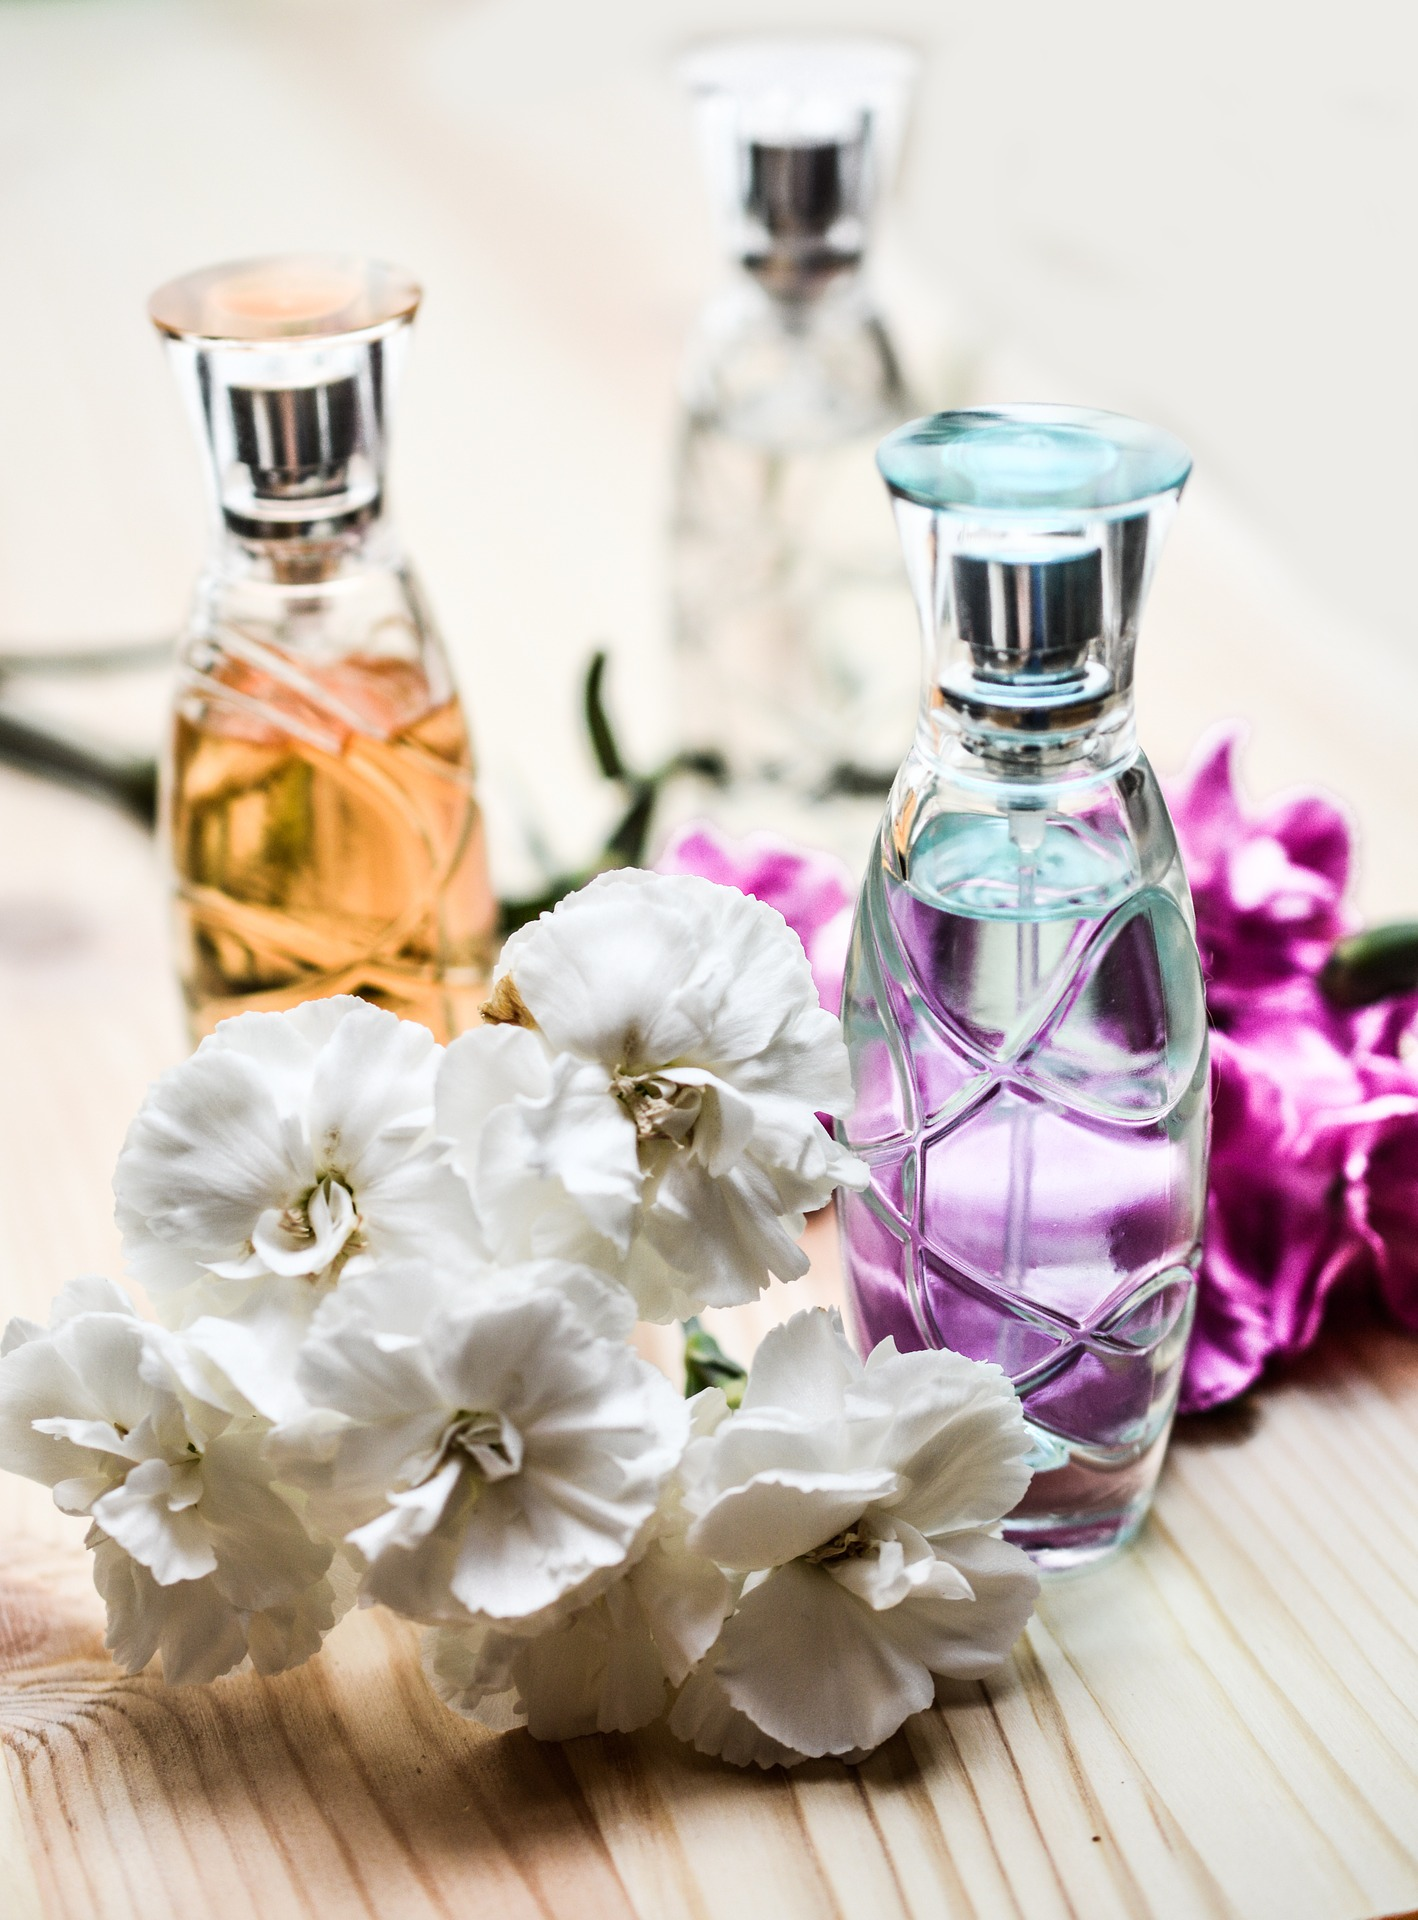 perfume in bottles and flowers